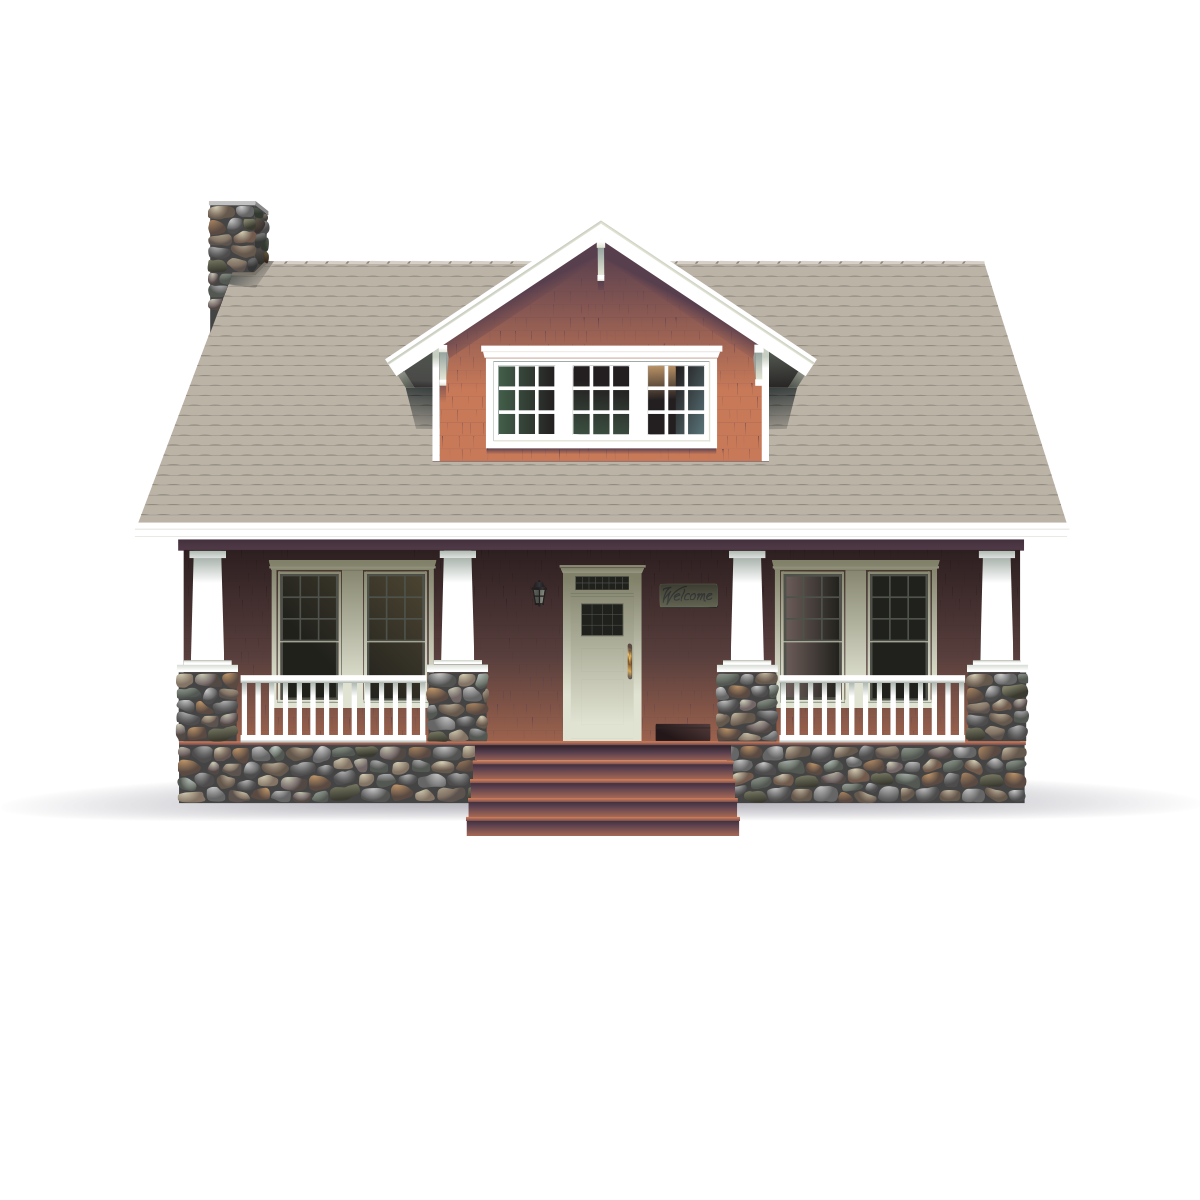 Brown bungalow house with beige roof and stone porch illustration